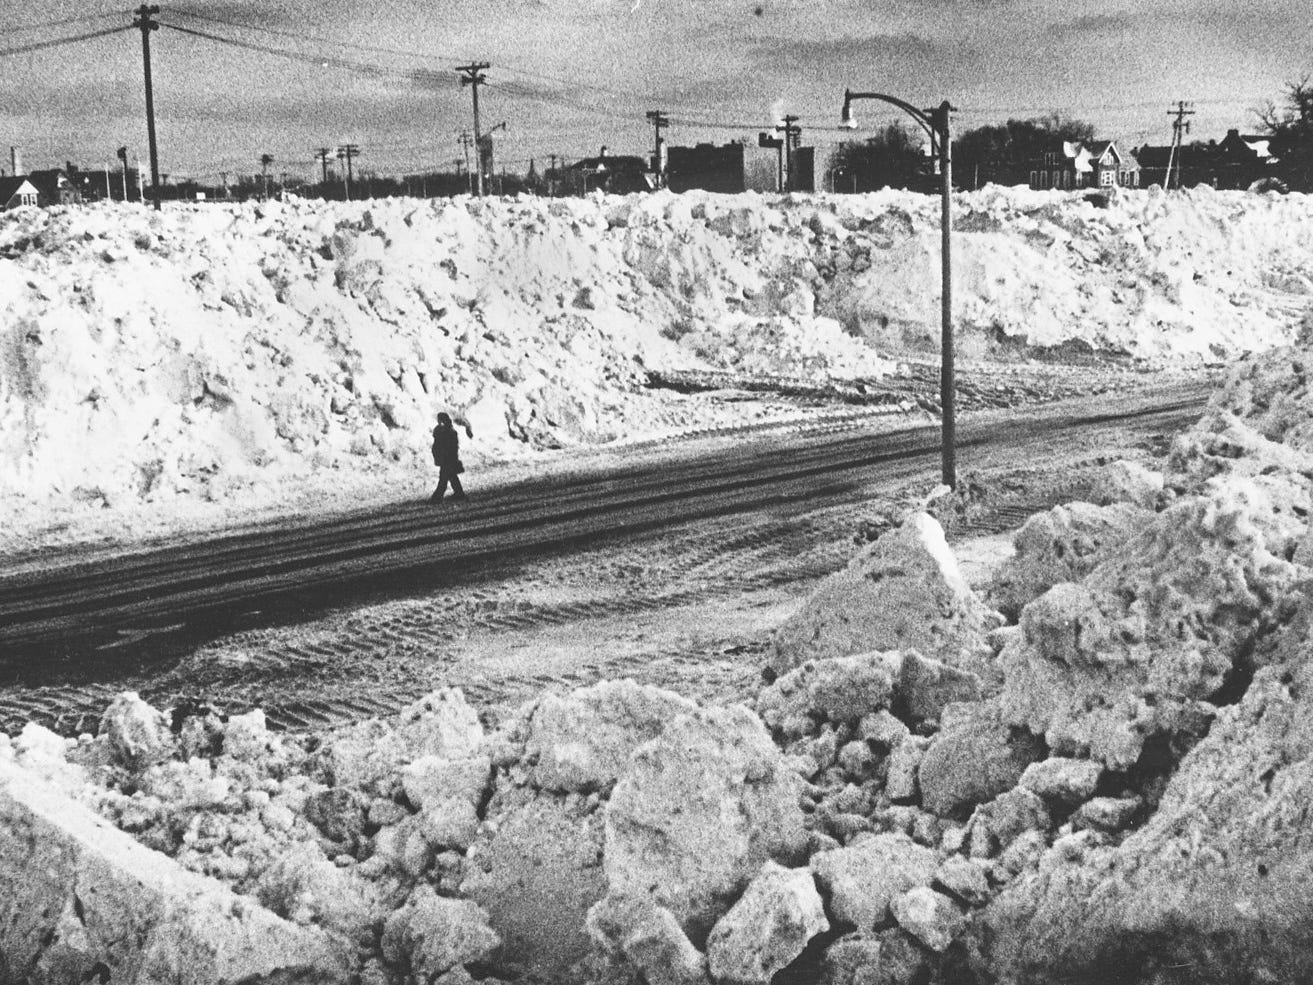 A solitary figure walks down North 26th Street between North Avenue and Meinecke Street, which has been turned into a mountain range made up of snow plowed from city streets on Jan. 30, 1979. The land was vacant because it had been cleared for the planned Park West Freeway, which was never built. This photo was published in the Jan. 31, 1979, Milwaukee Journal.